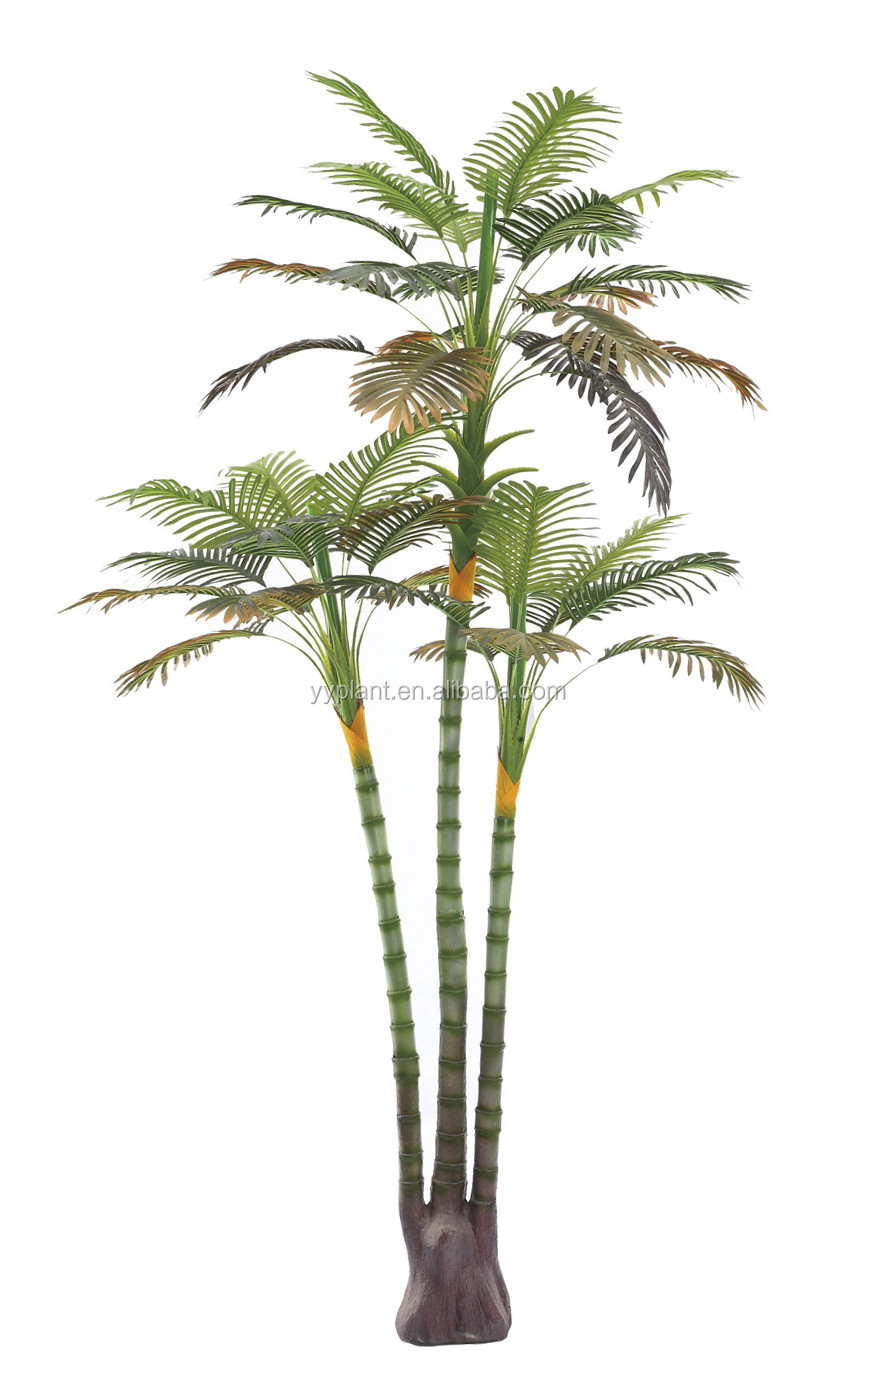 Artificial Areca Palm Tree Potted Plants Artificial Chrysalidocarpus Lutescens Bonsai Synthetic Indoor Coconut Tree Buy Artificial Chrysalidocarpus All About Palm Trees For Sale Buy Palm Trees Indoor Amp Outdoor